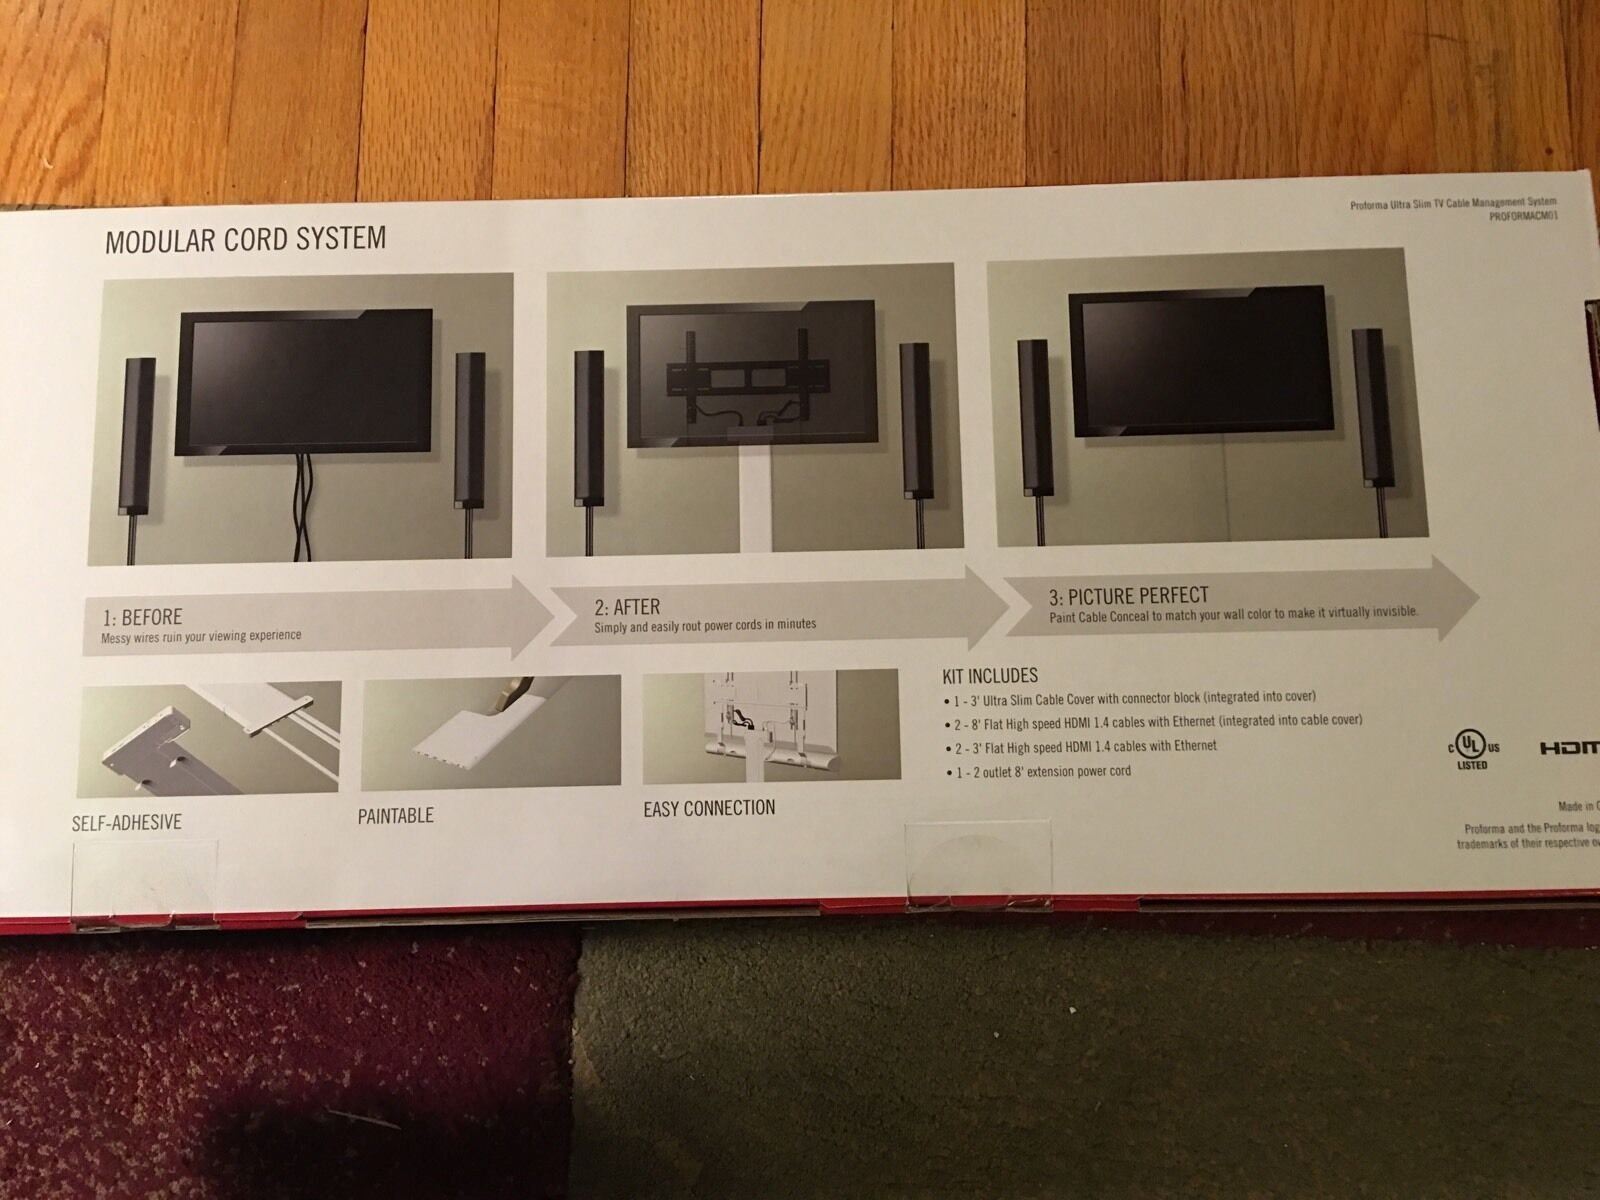 Cable Management Proformacm01 System Ultra Slim Sony Universal Hdtv Spacesaving Design Simplifies Inwall Wiring And Keeps Messy Cables Ebay